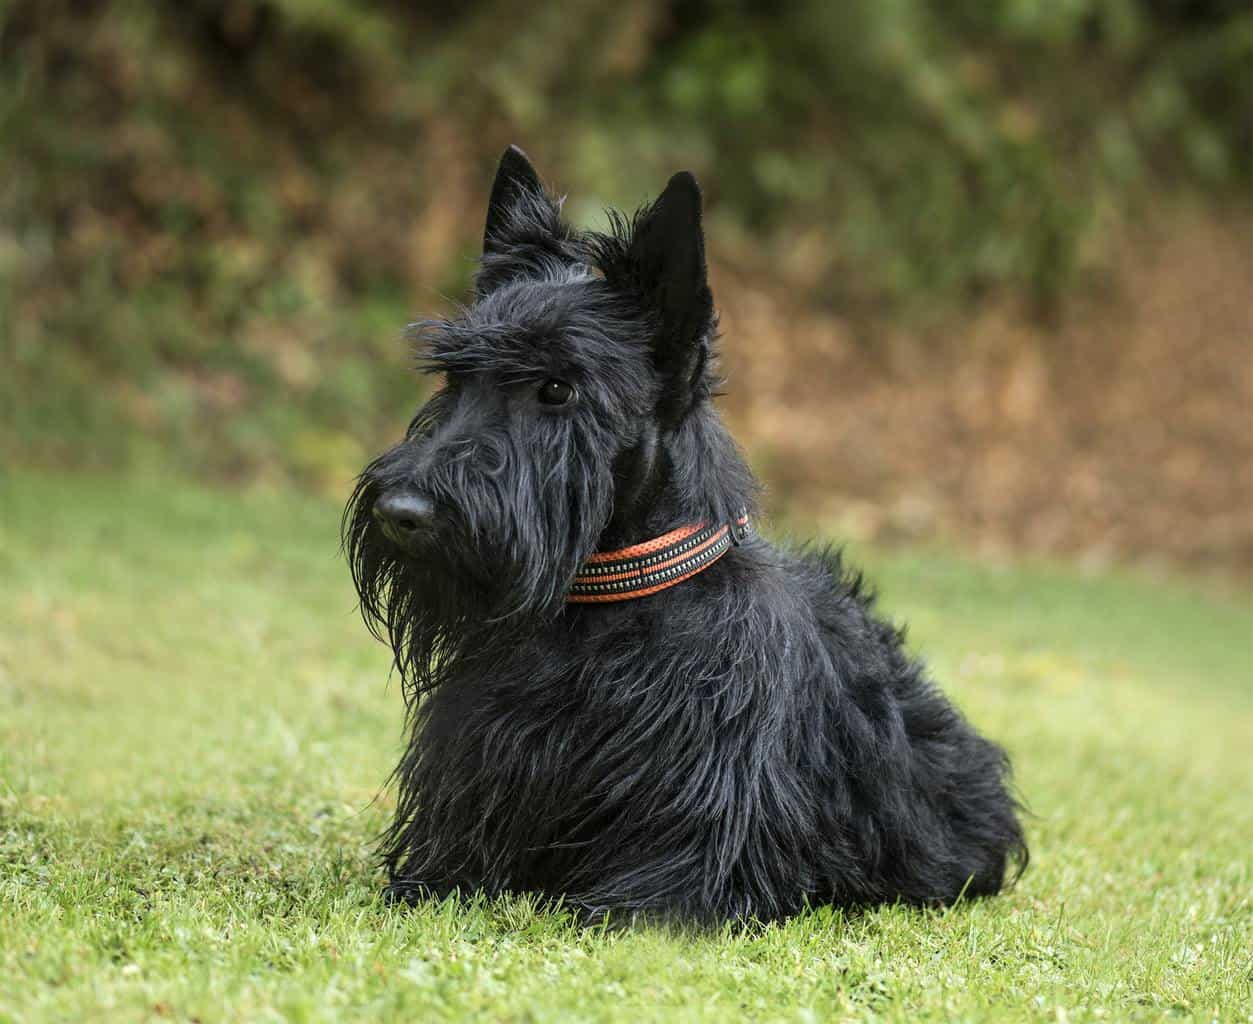 Scottish Terrier, 2 years old, in park